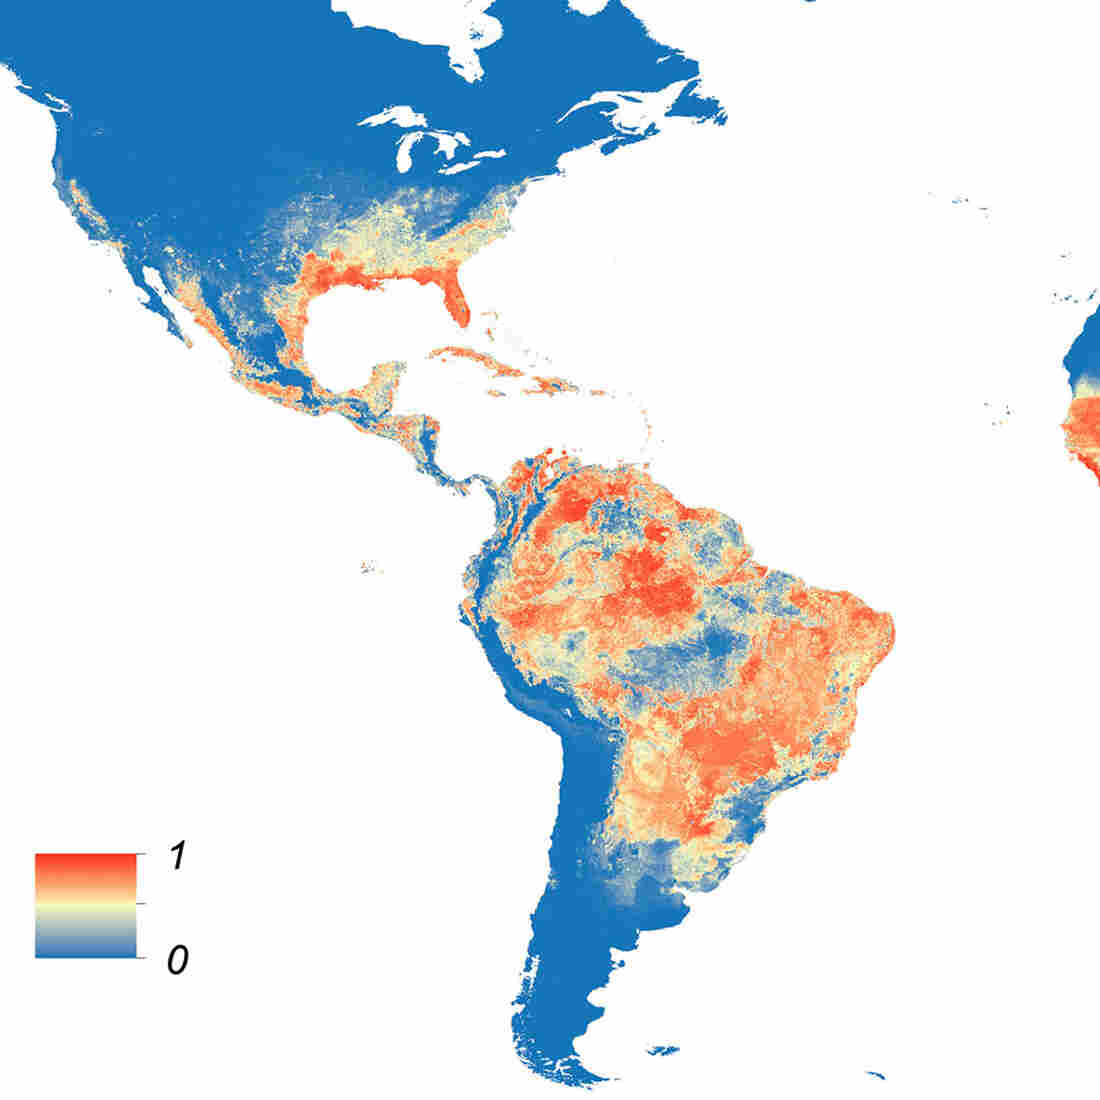 This map shows the predicted distribution of Aedis aegypti, the mosquito that carries Zika virus. The redder the area, the higher the probability.